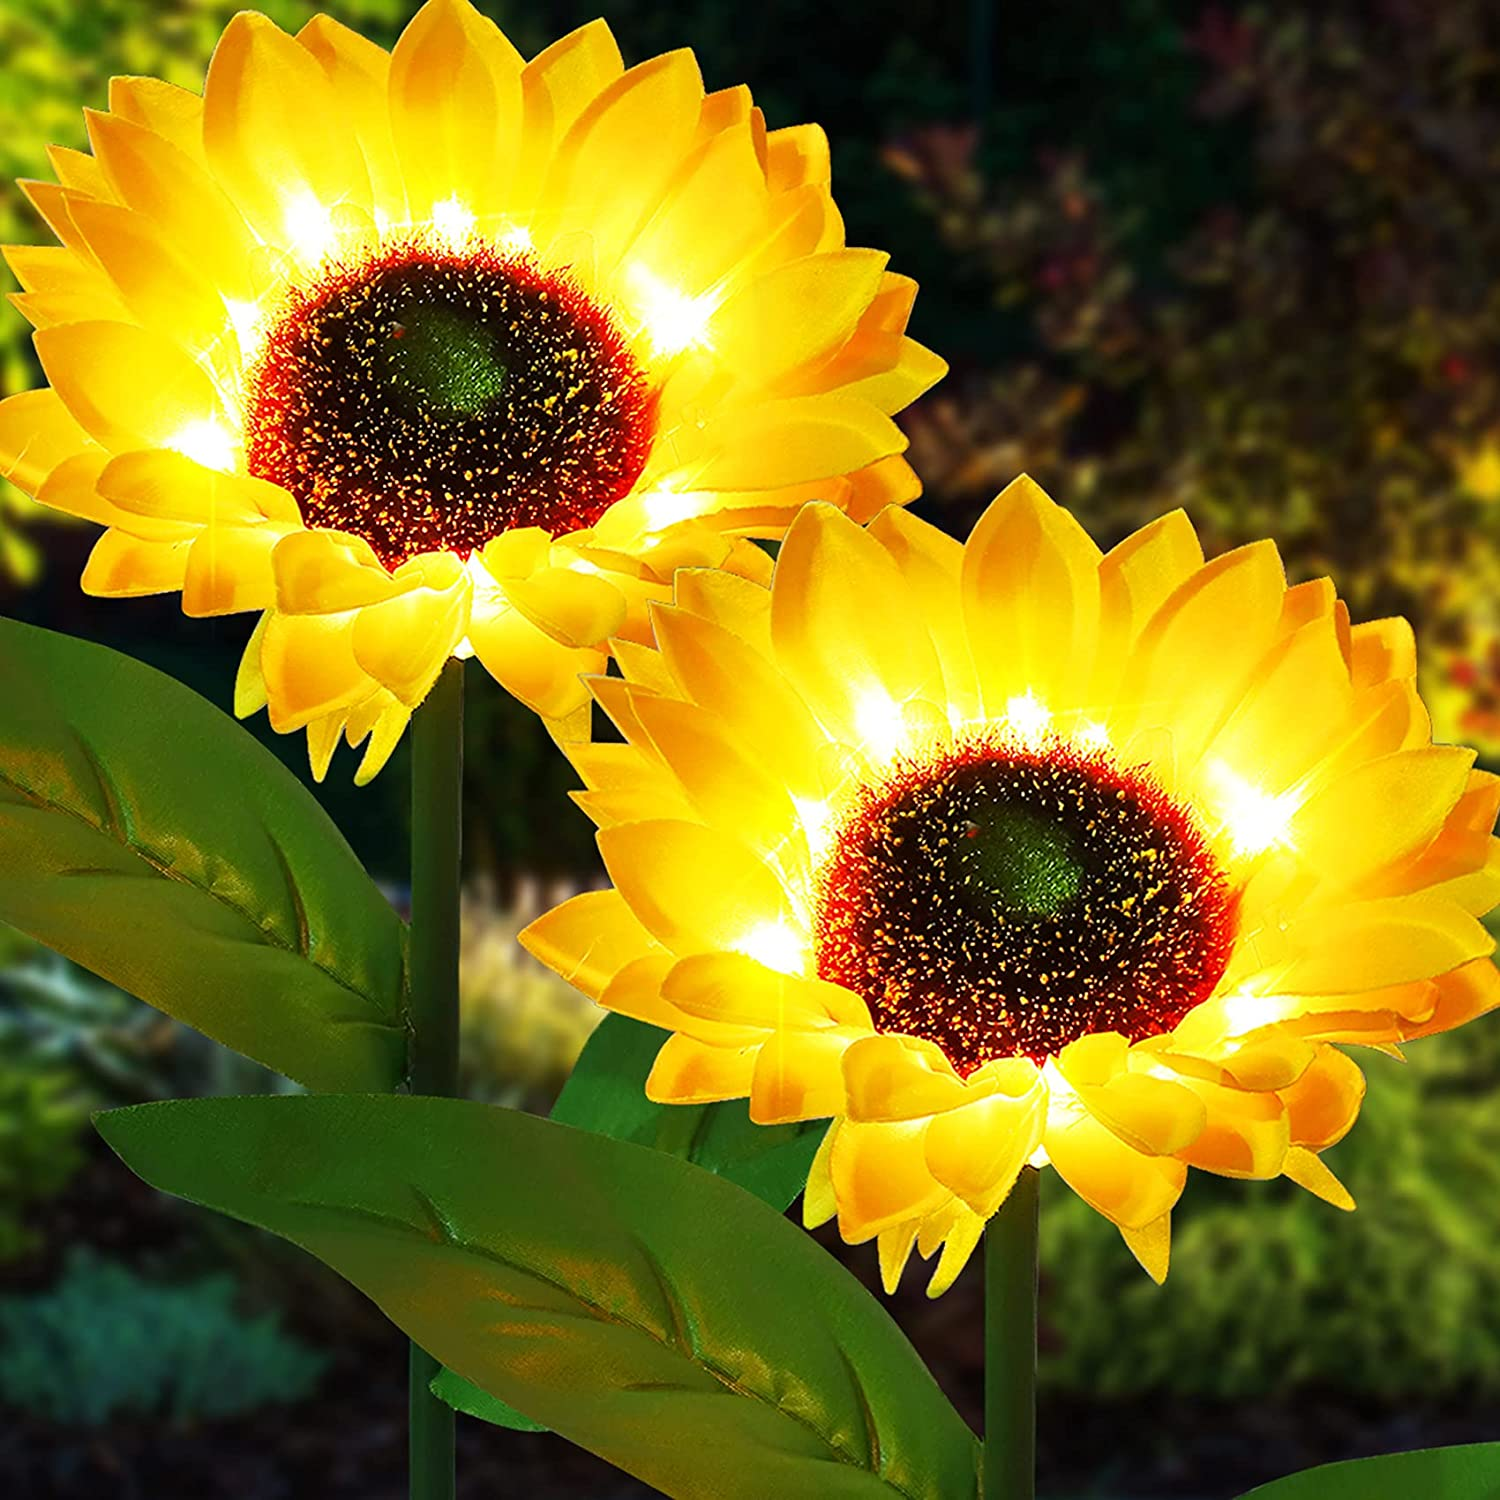 2 Pack Garden Solar Lights, Outdoor Realistic Sunflower Lights Flower Stake, LED Solar Powered Lights for Patio Lawn Garden Yard Pathway Landscape Decoration (Yellow)